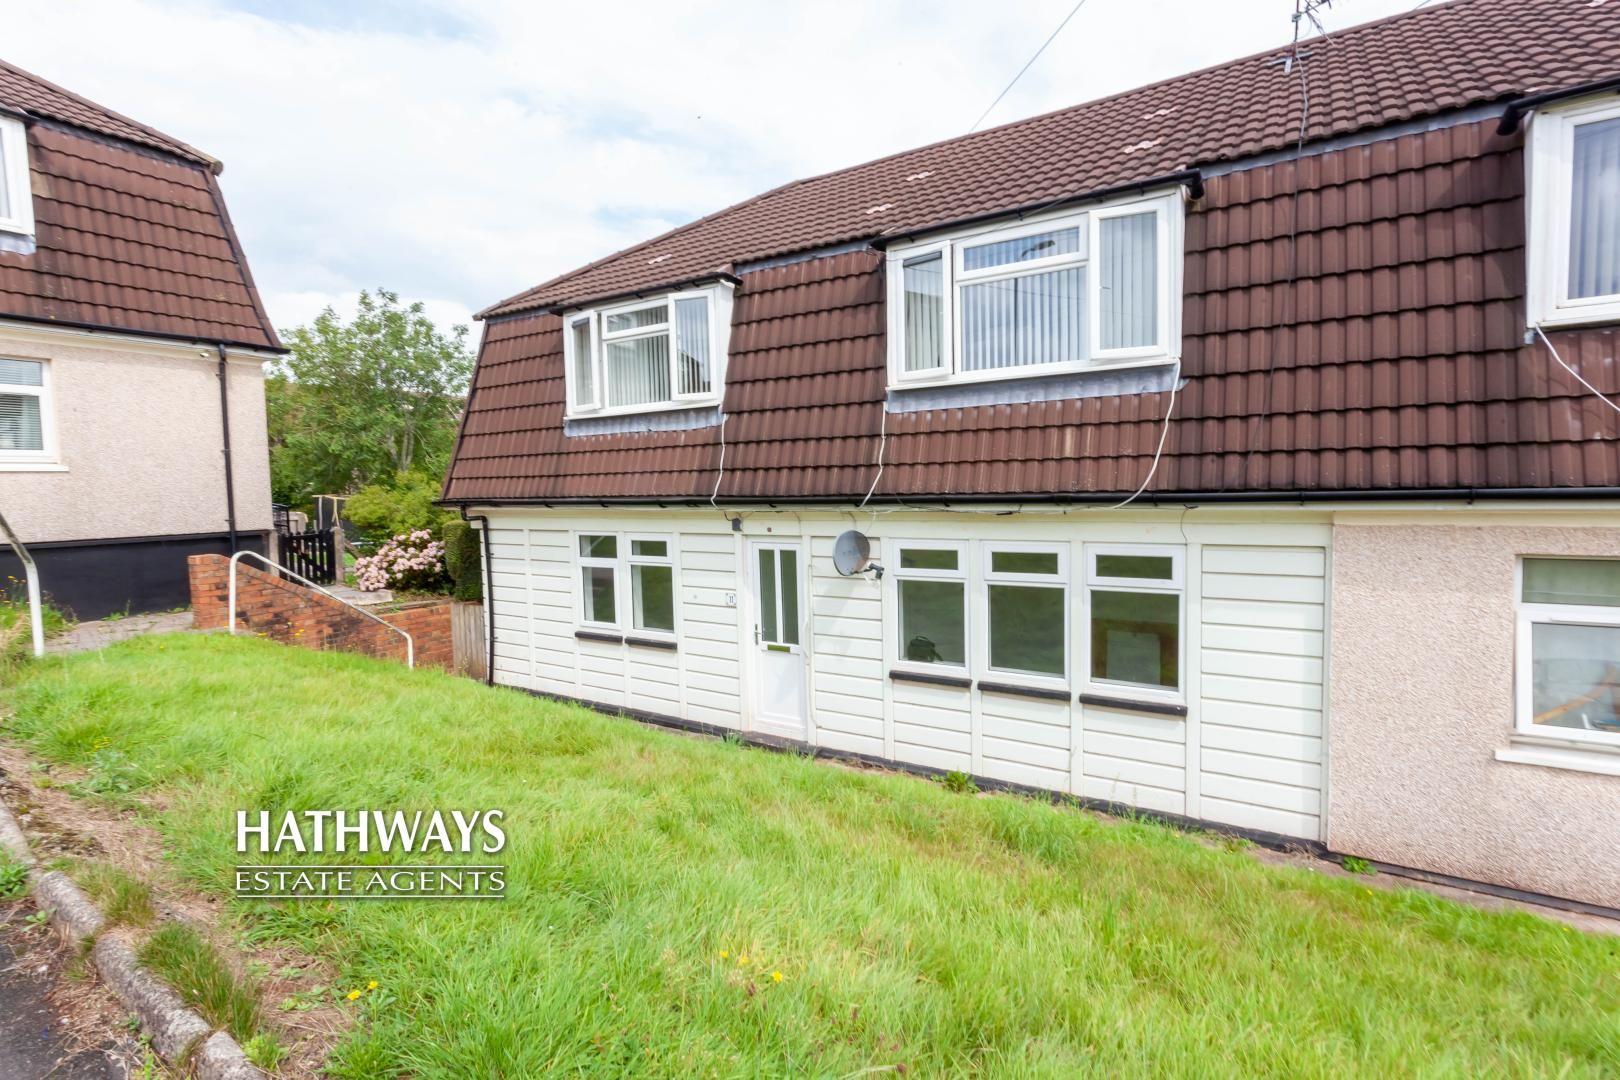 2 bed flat for sale in Bellin Close - Property Image 1